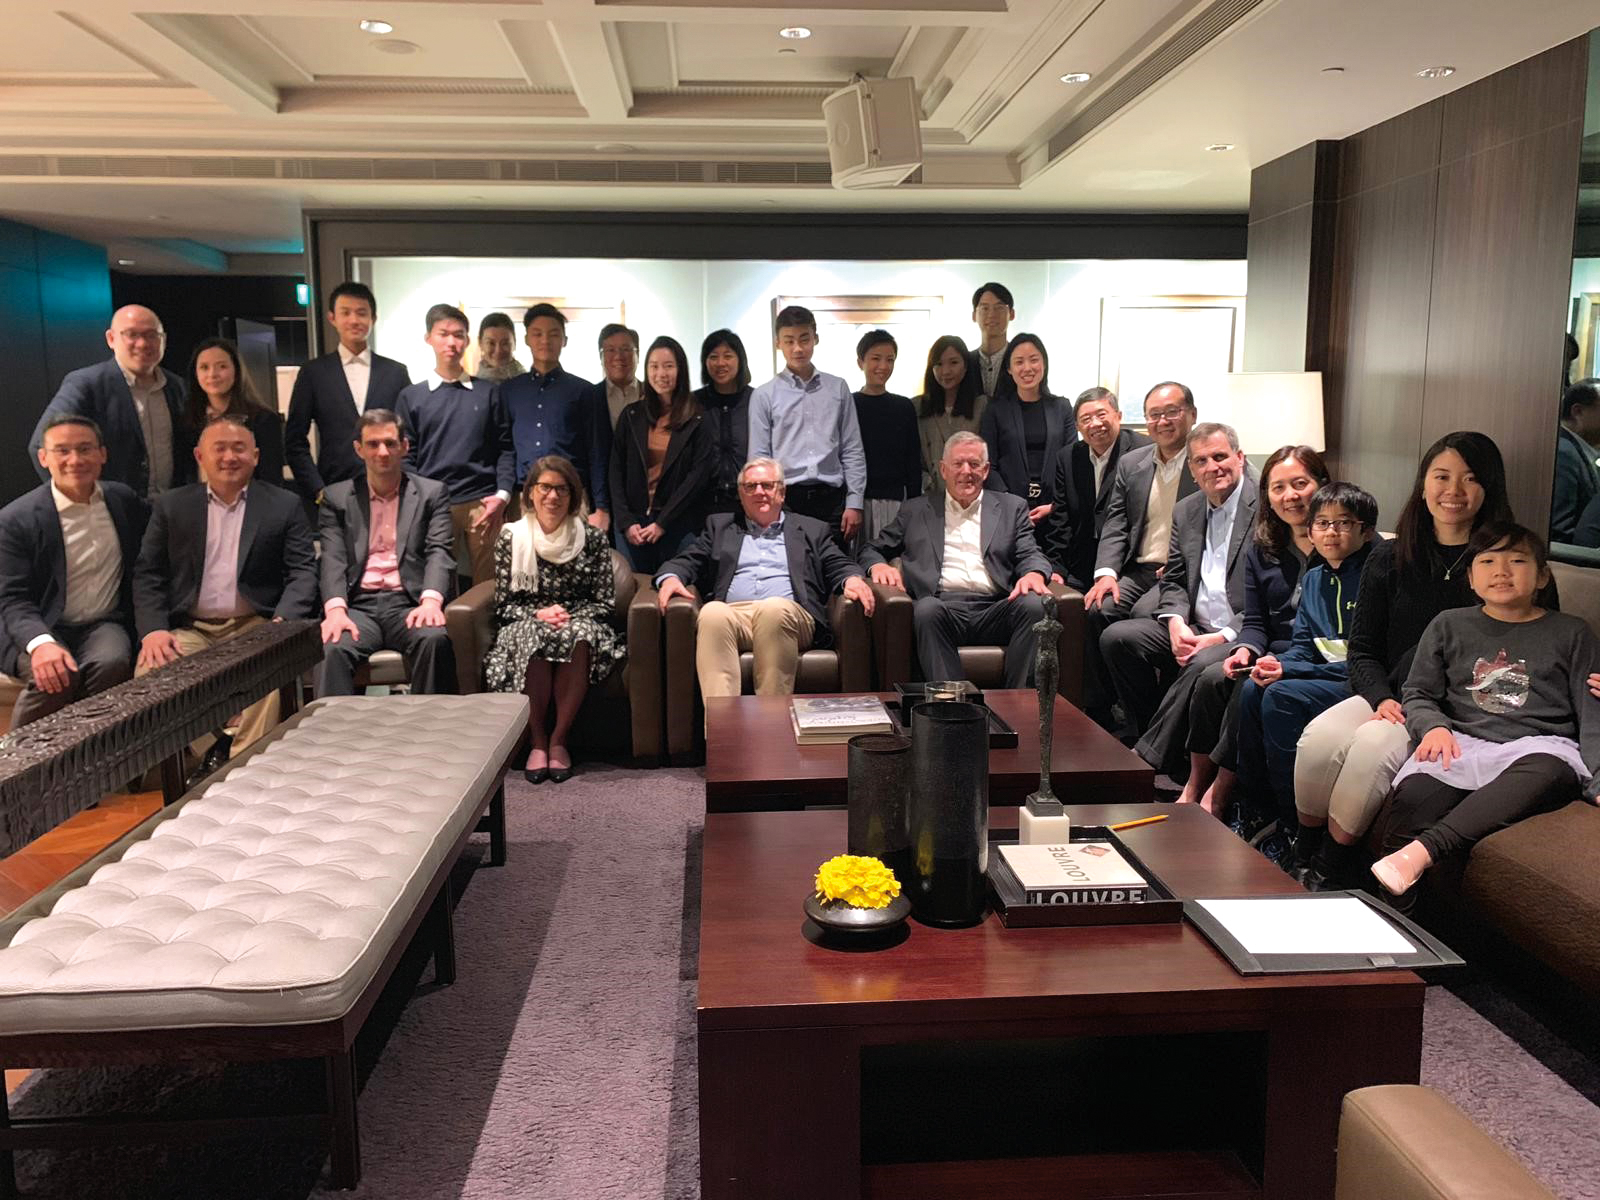 Taipei City  A large group, hosted by Janie Hou '82, P'18, welcomed Interim Rector Amy Richards, Board of Trustees President Archie Cox '58, and Chief Advancement Officer Bill Kissick P'12.